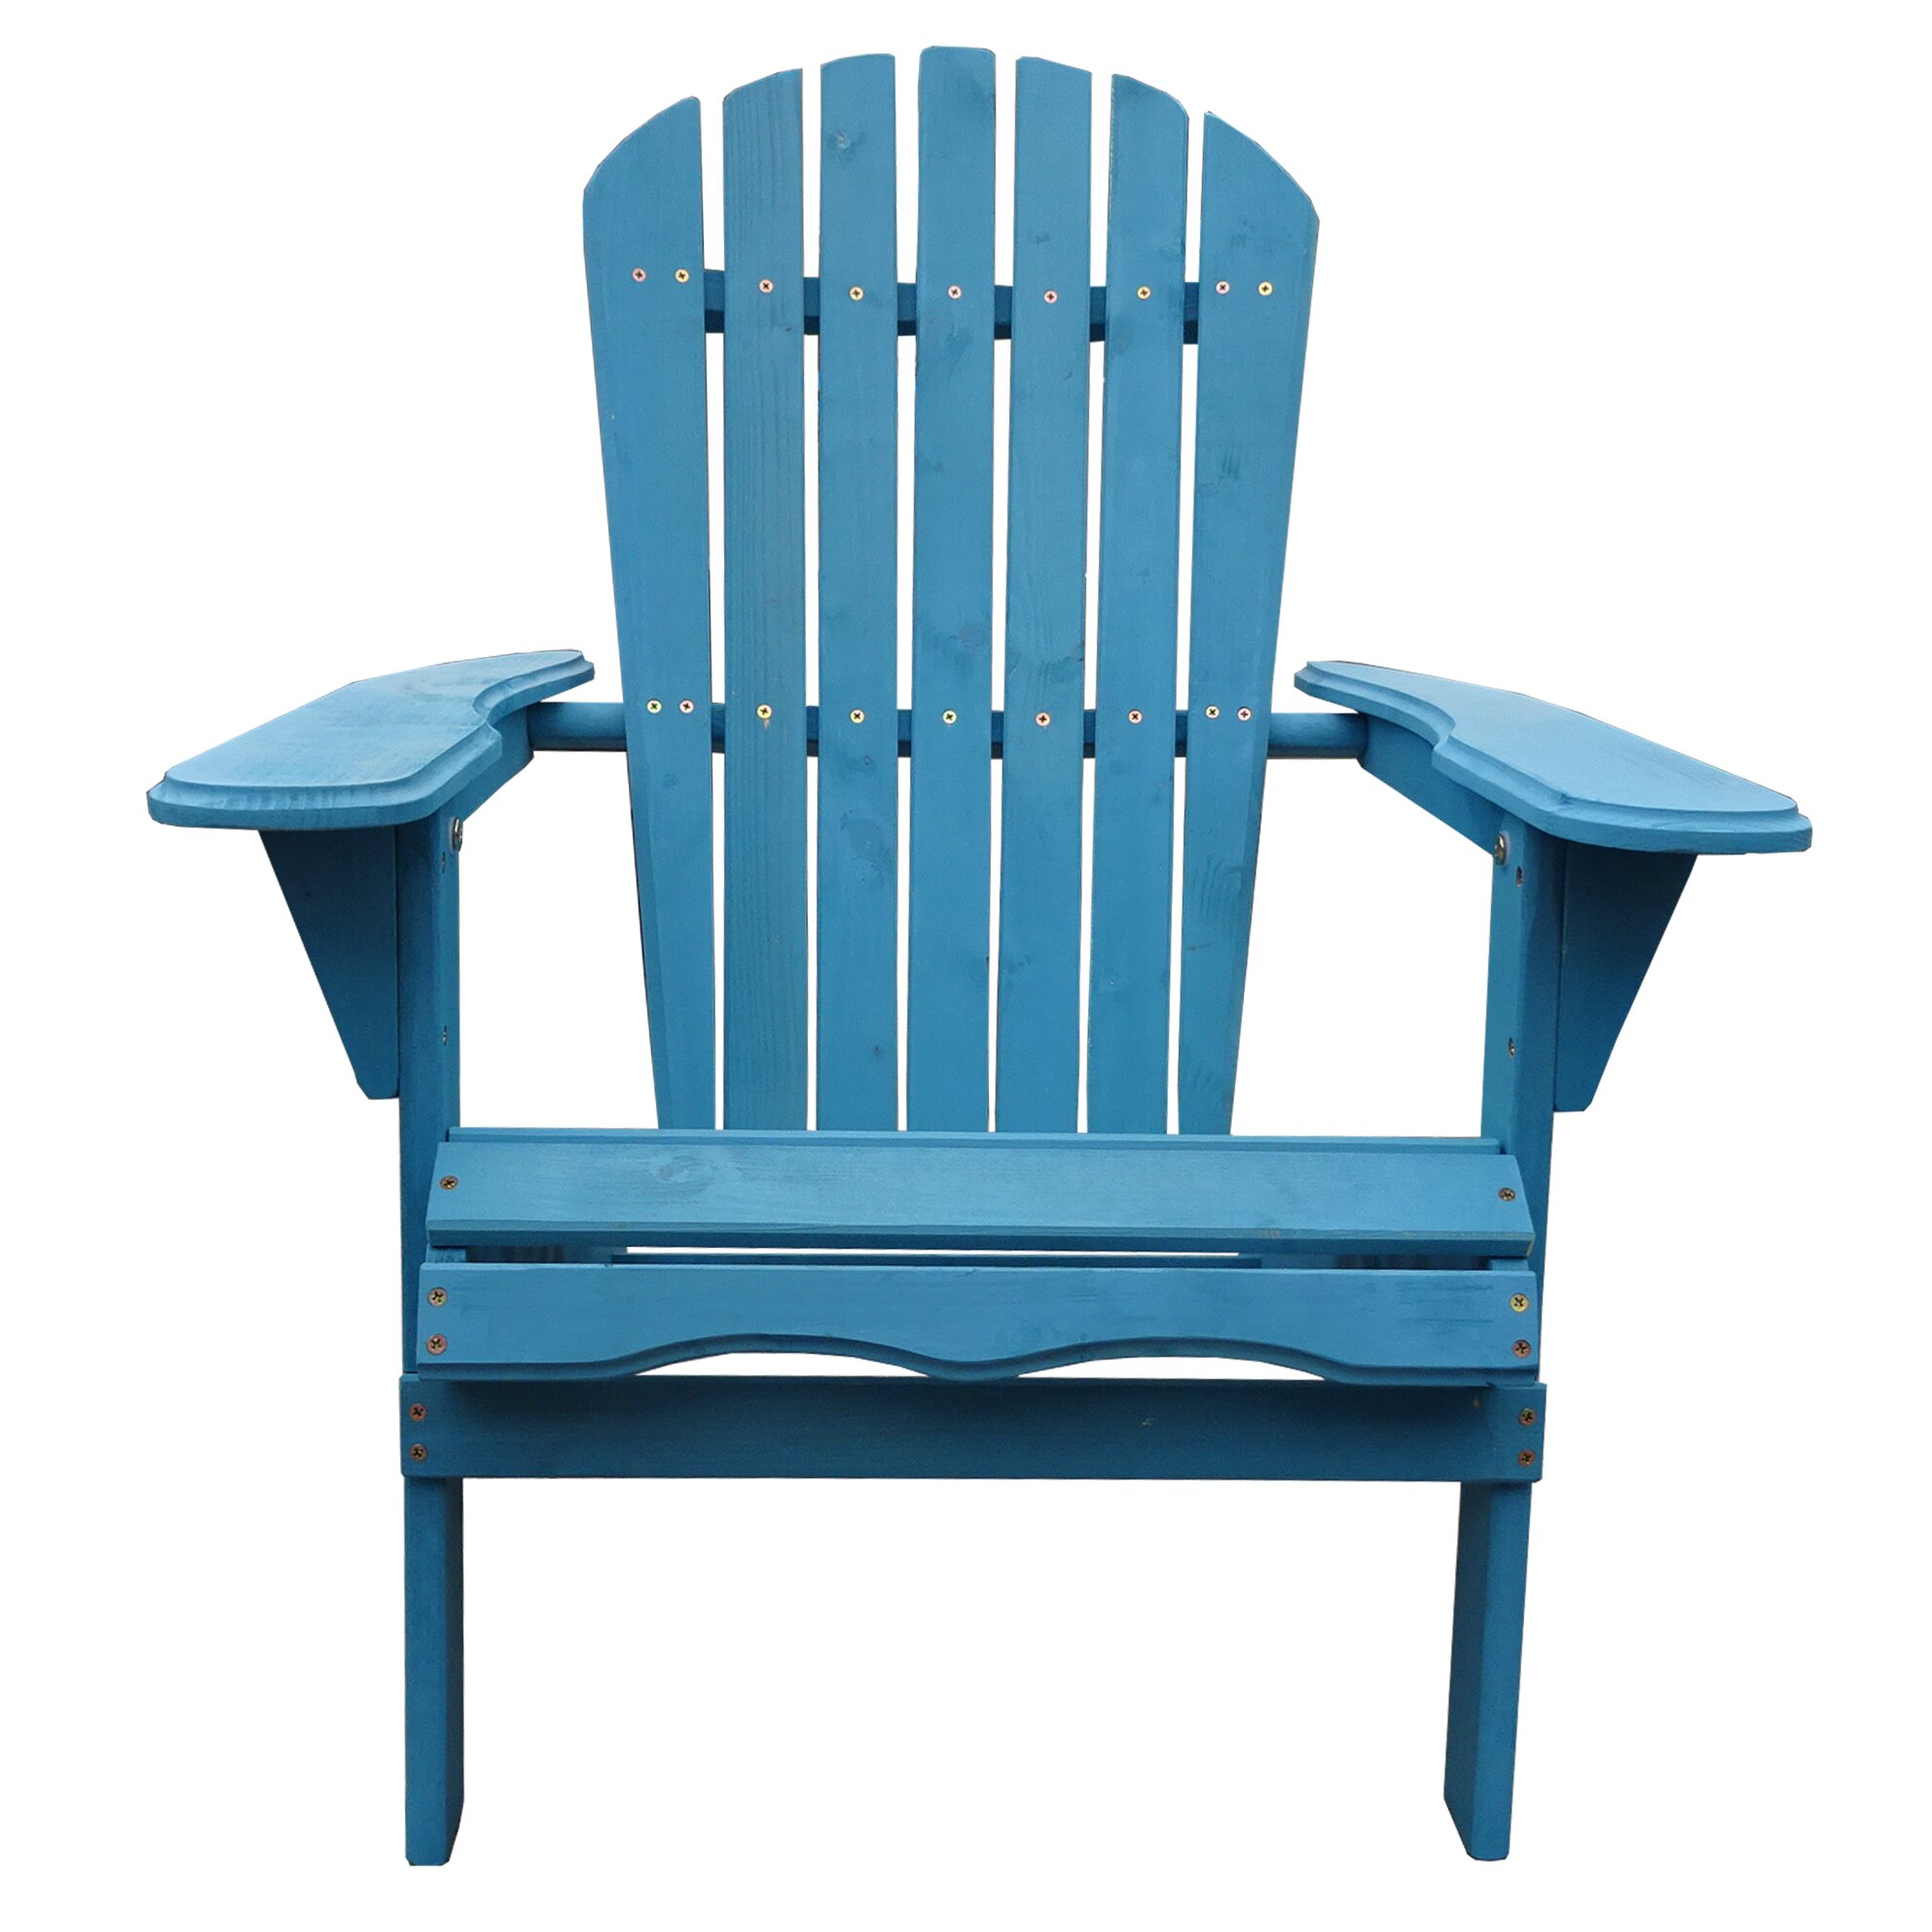 Breakwater Bay Albia Adirondack Chair